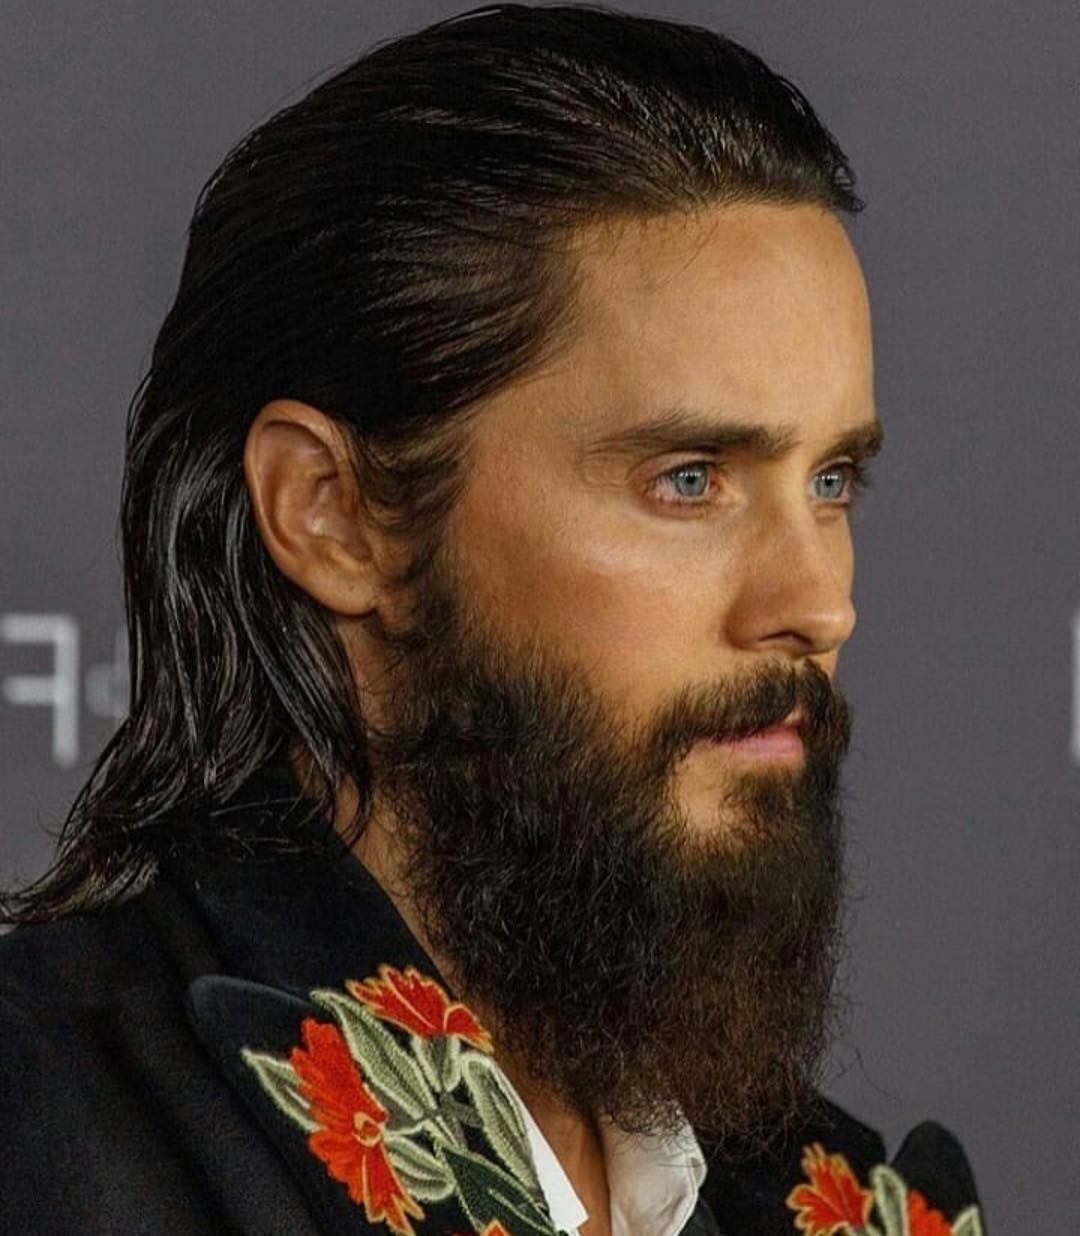 Jared Leto Hairstyle Men S Hairstyles Jared Leto Haircut Jared Leto Jared Leto Short Hair